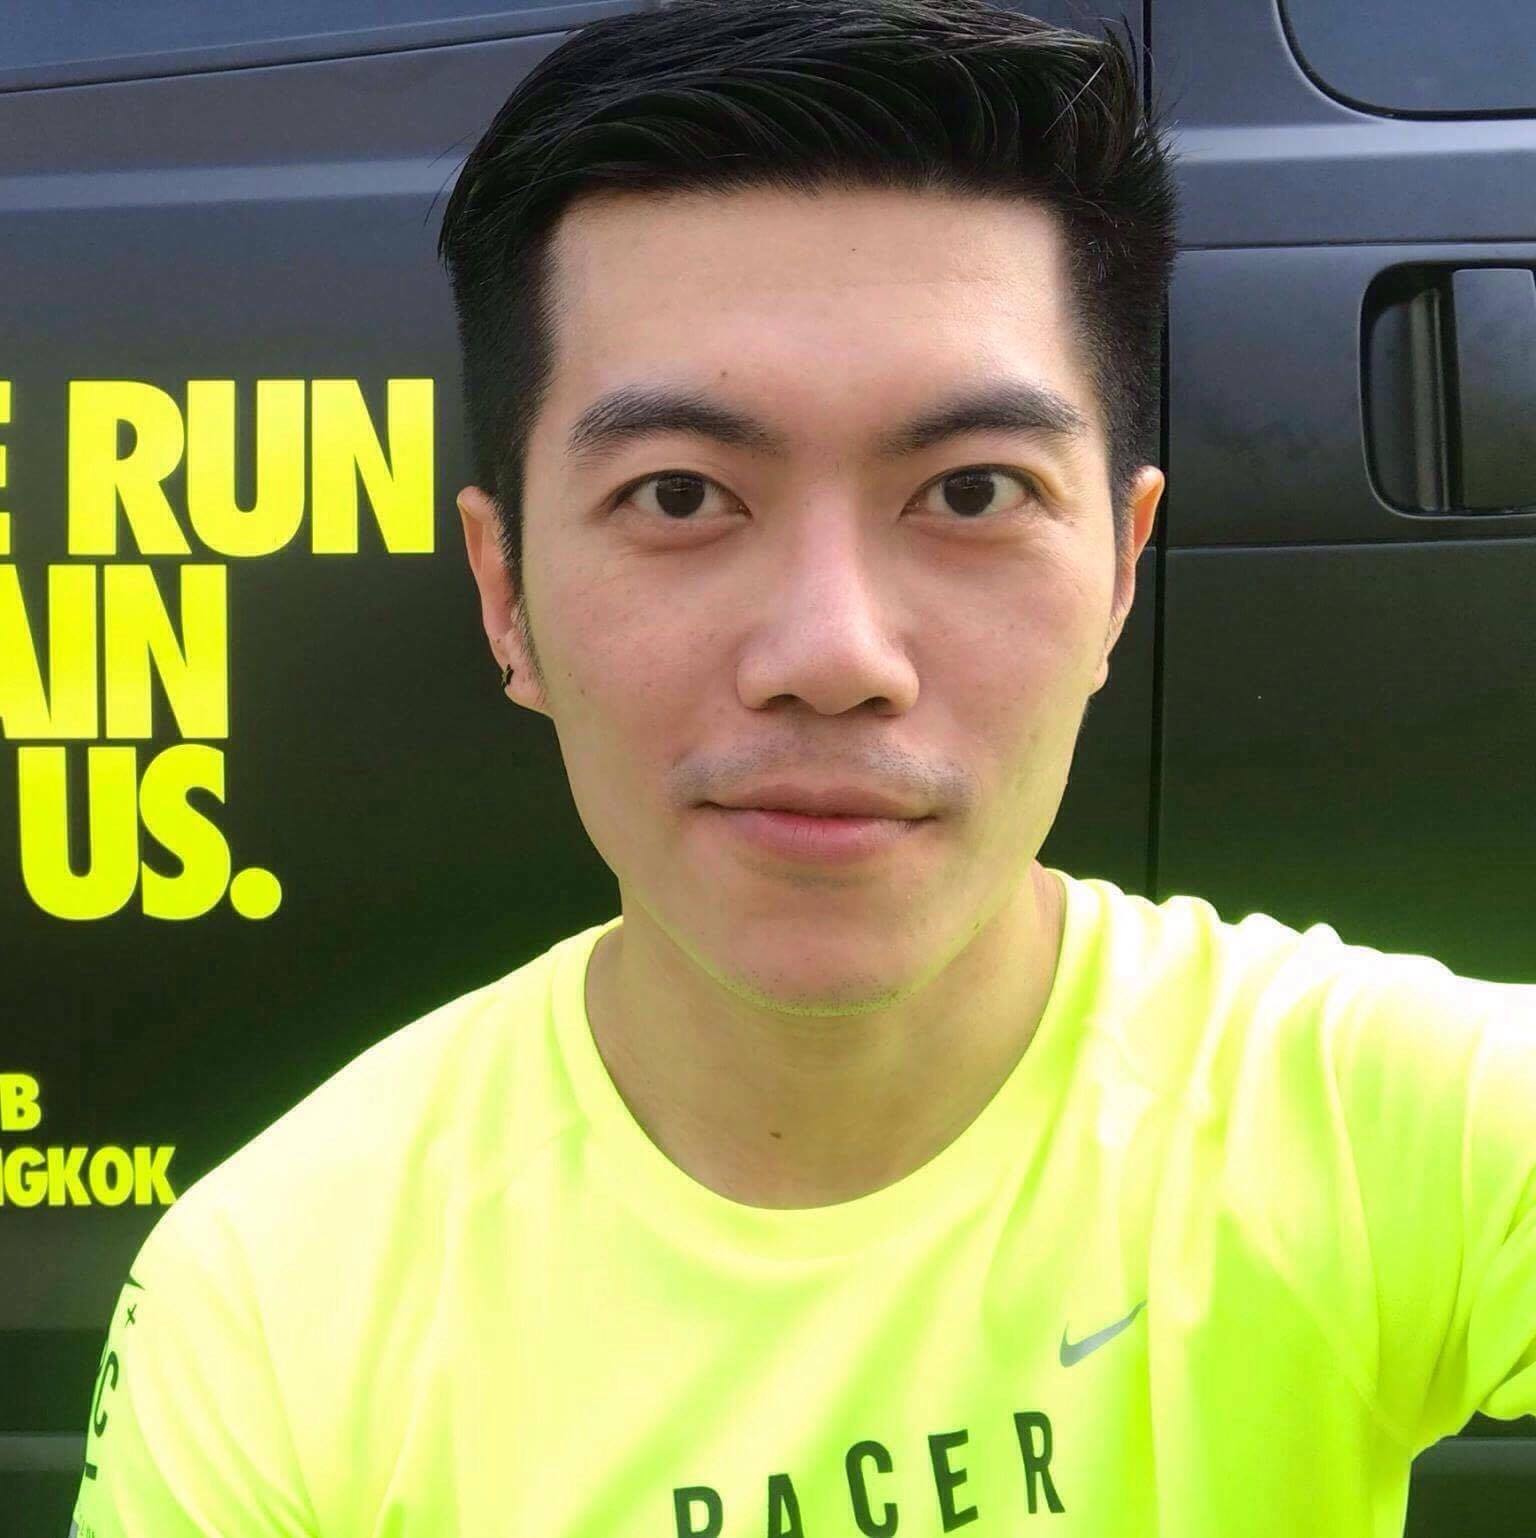 """Pluert   """"Pete"""" Lertsukittipongsa   Project manager   A runner who loves challenge and money."""